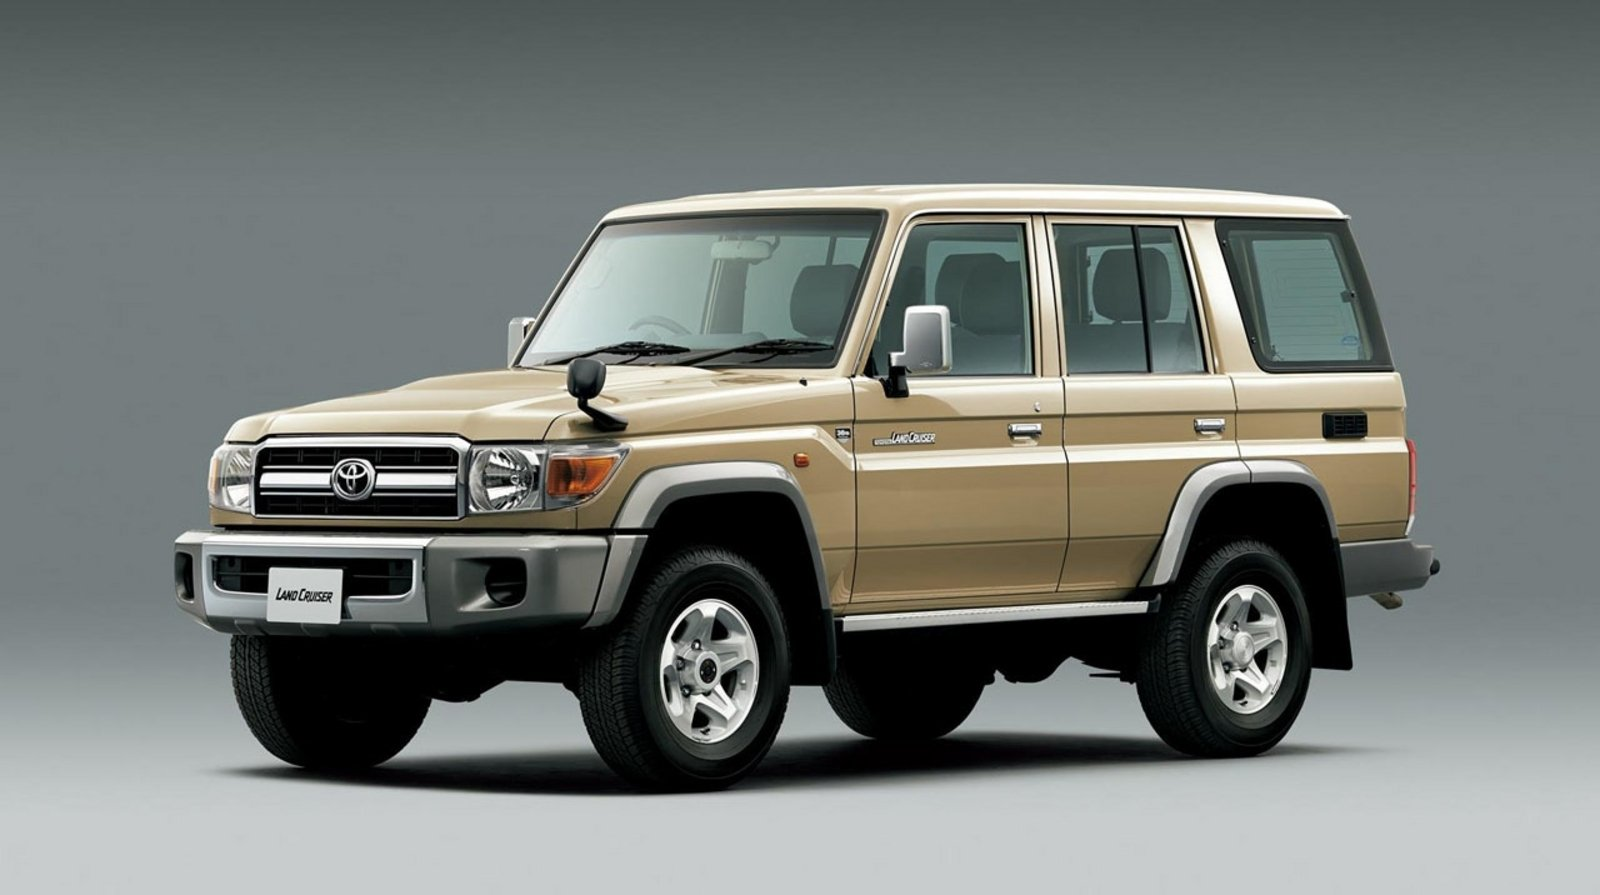 2014 toyota land cruiser 70 review top speed. Black Bedroom Furniture Sets. Home Design Ideas